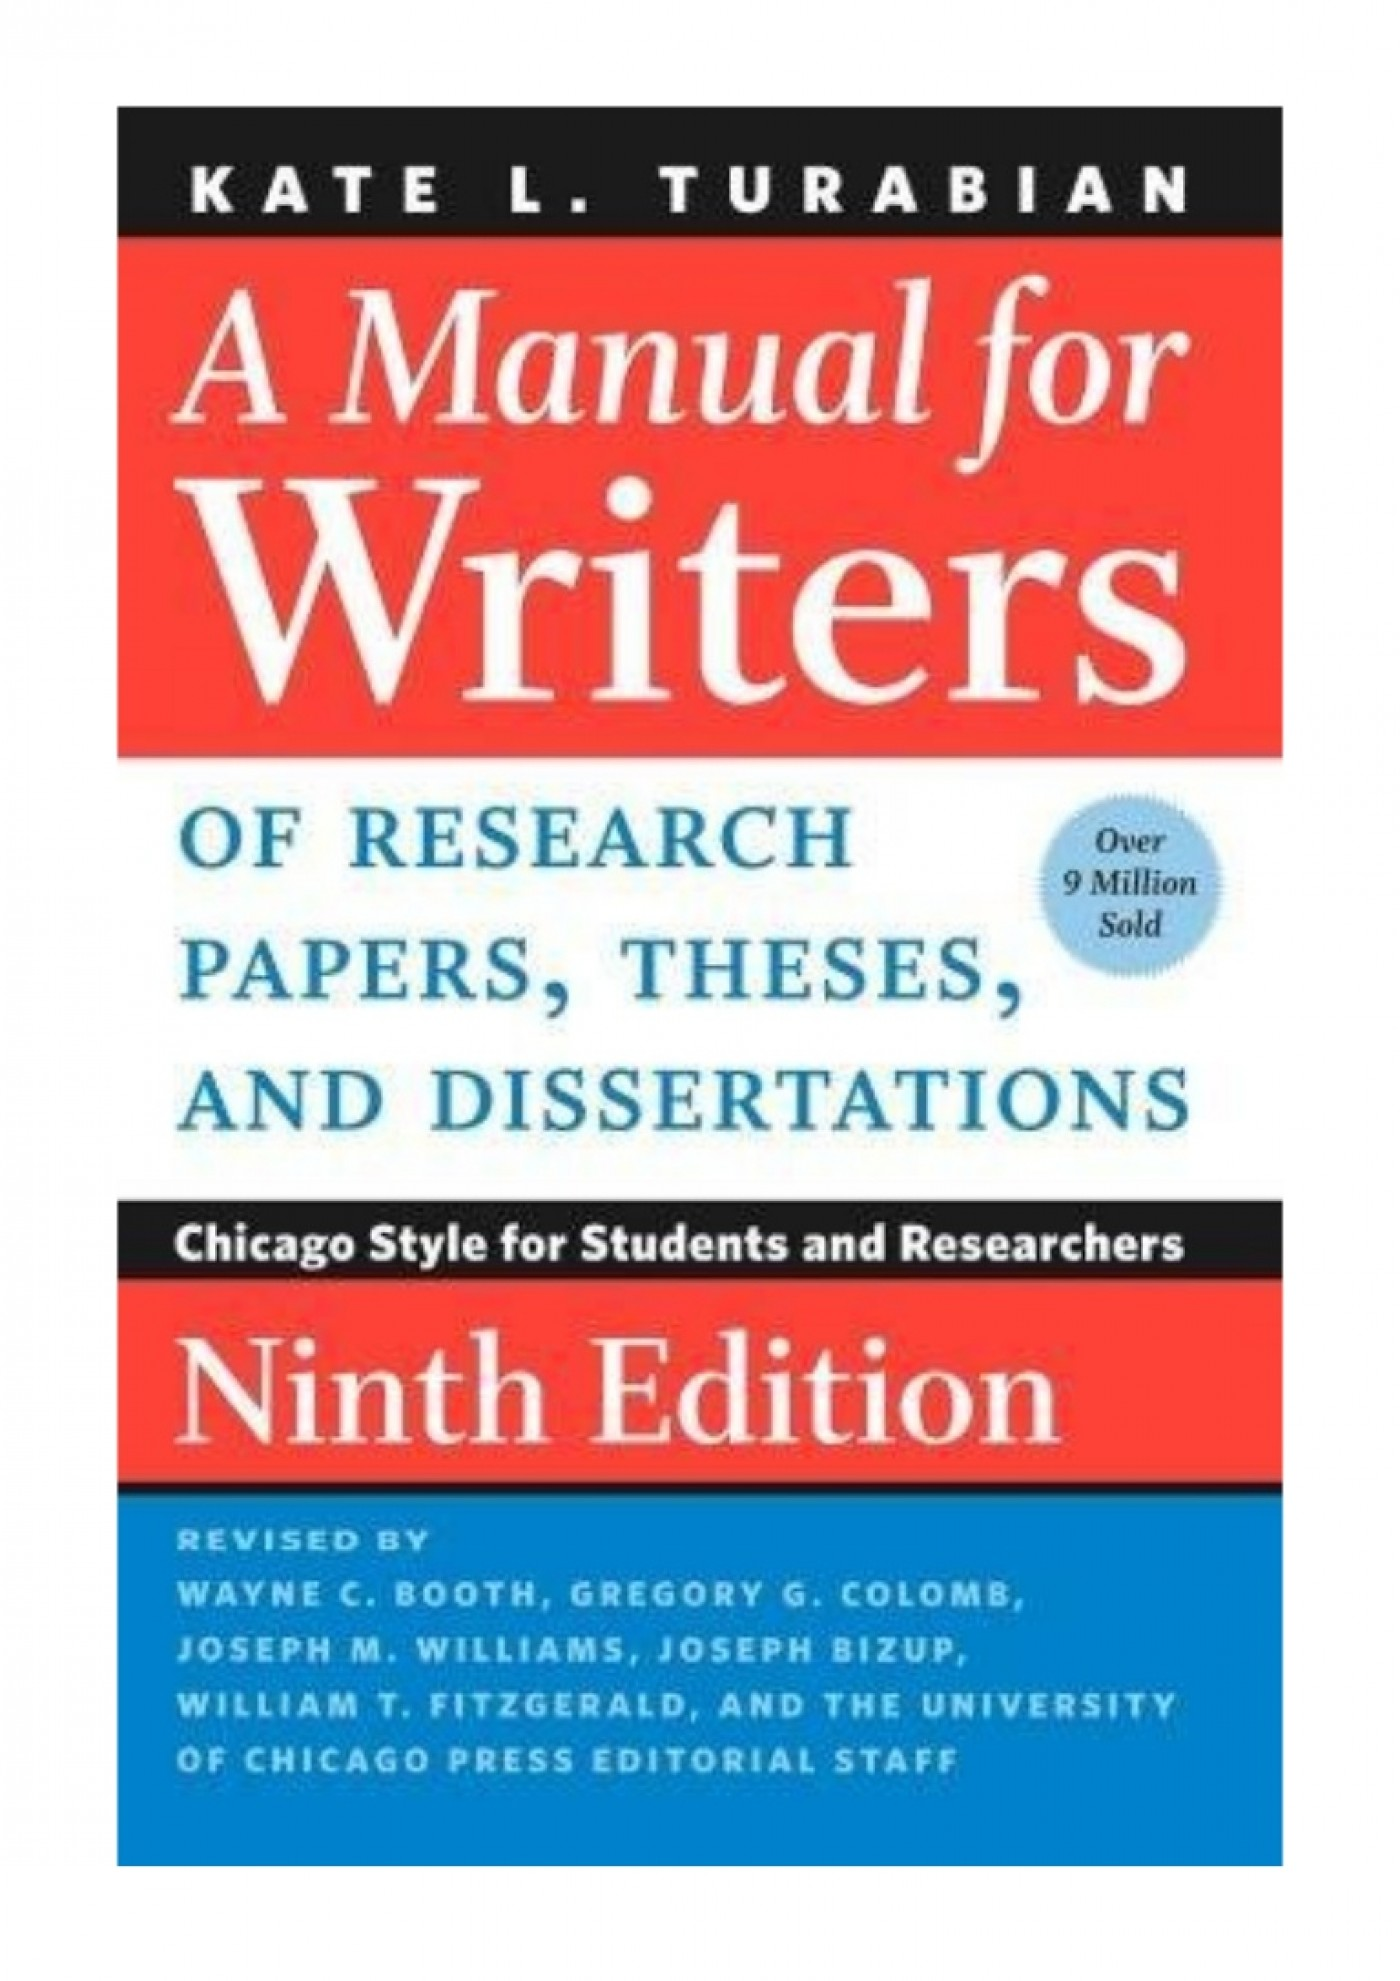 007 022643057x Amanualforwritersofresearchpapersthesesanddissertationsnintheditionbykatel Thumbnail Research Paper Manual For Writers Of Papers Theses And Sensational A Dissertations 8th Edition Pdf Eighth 1400